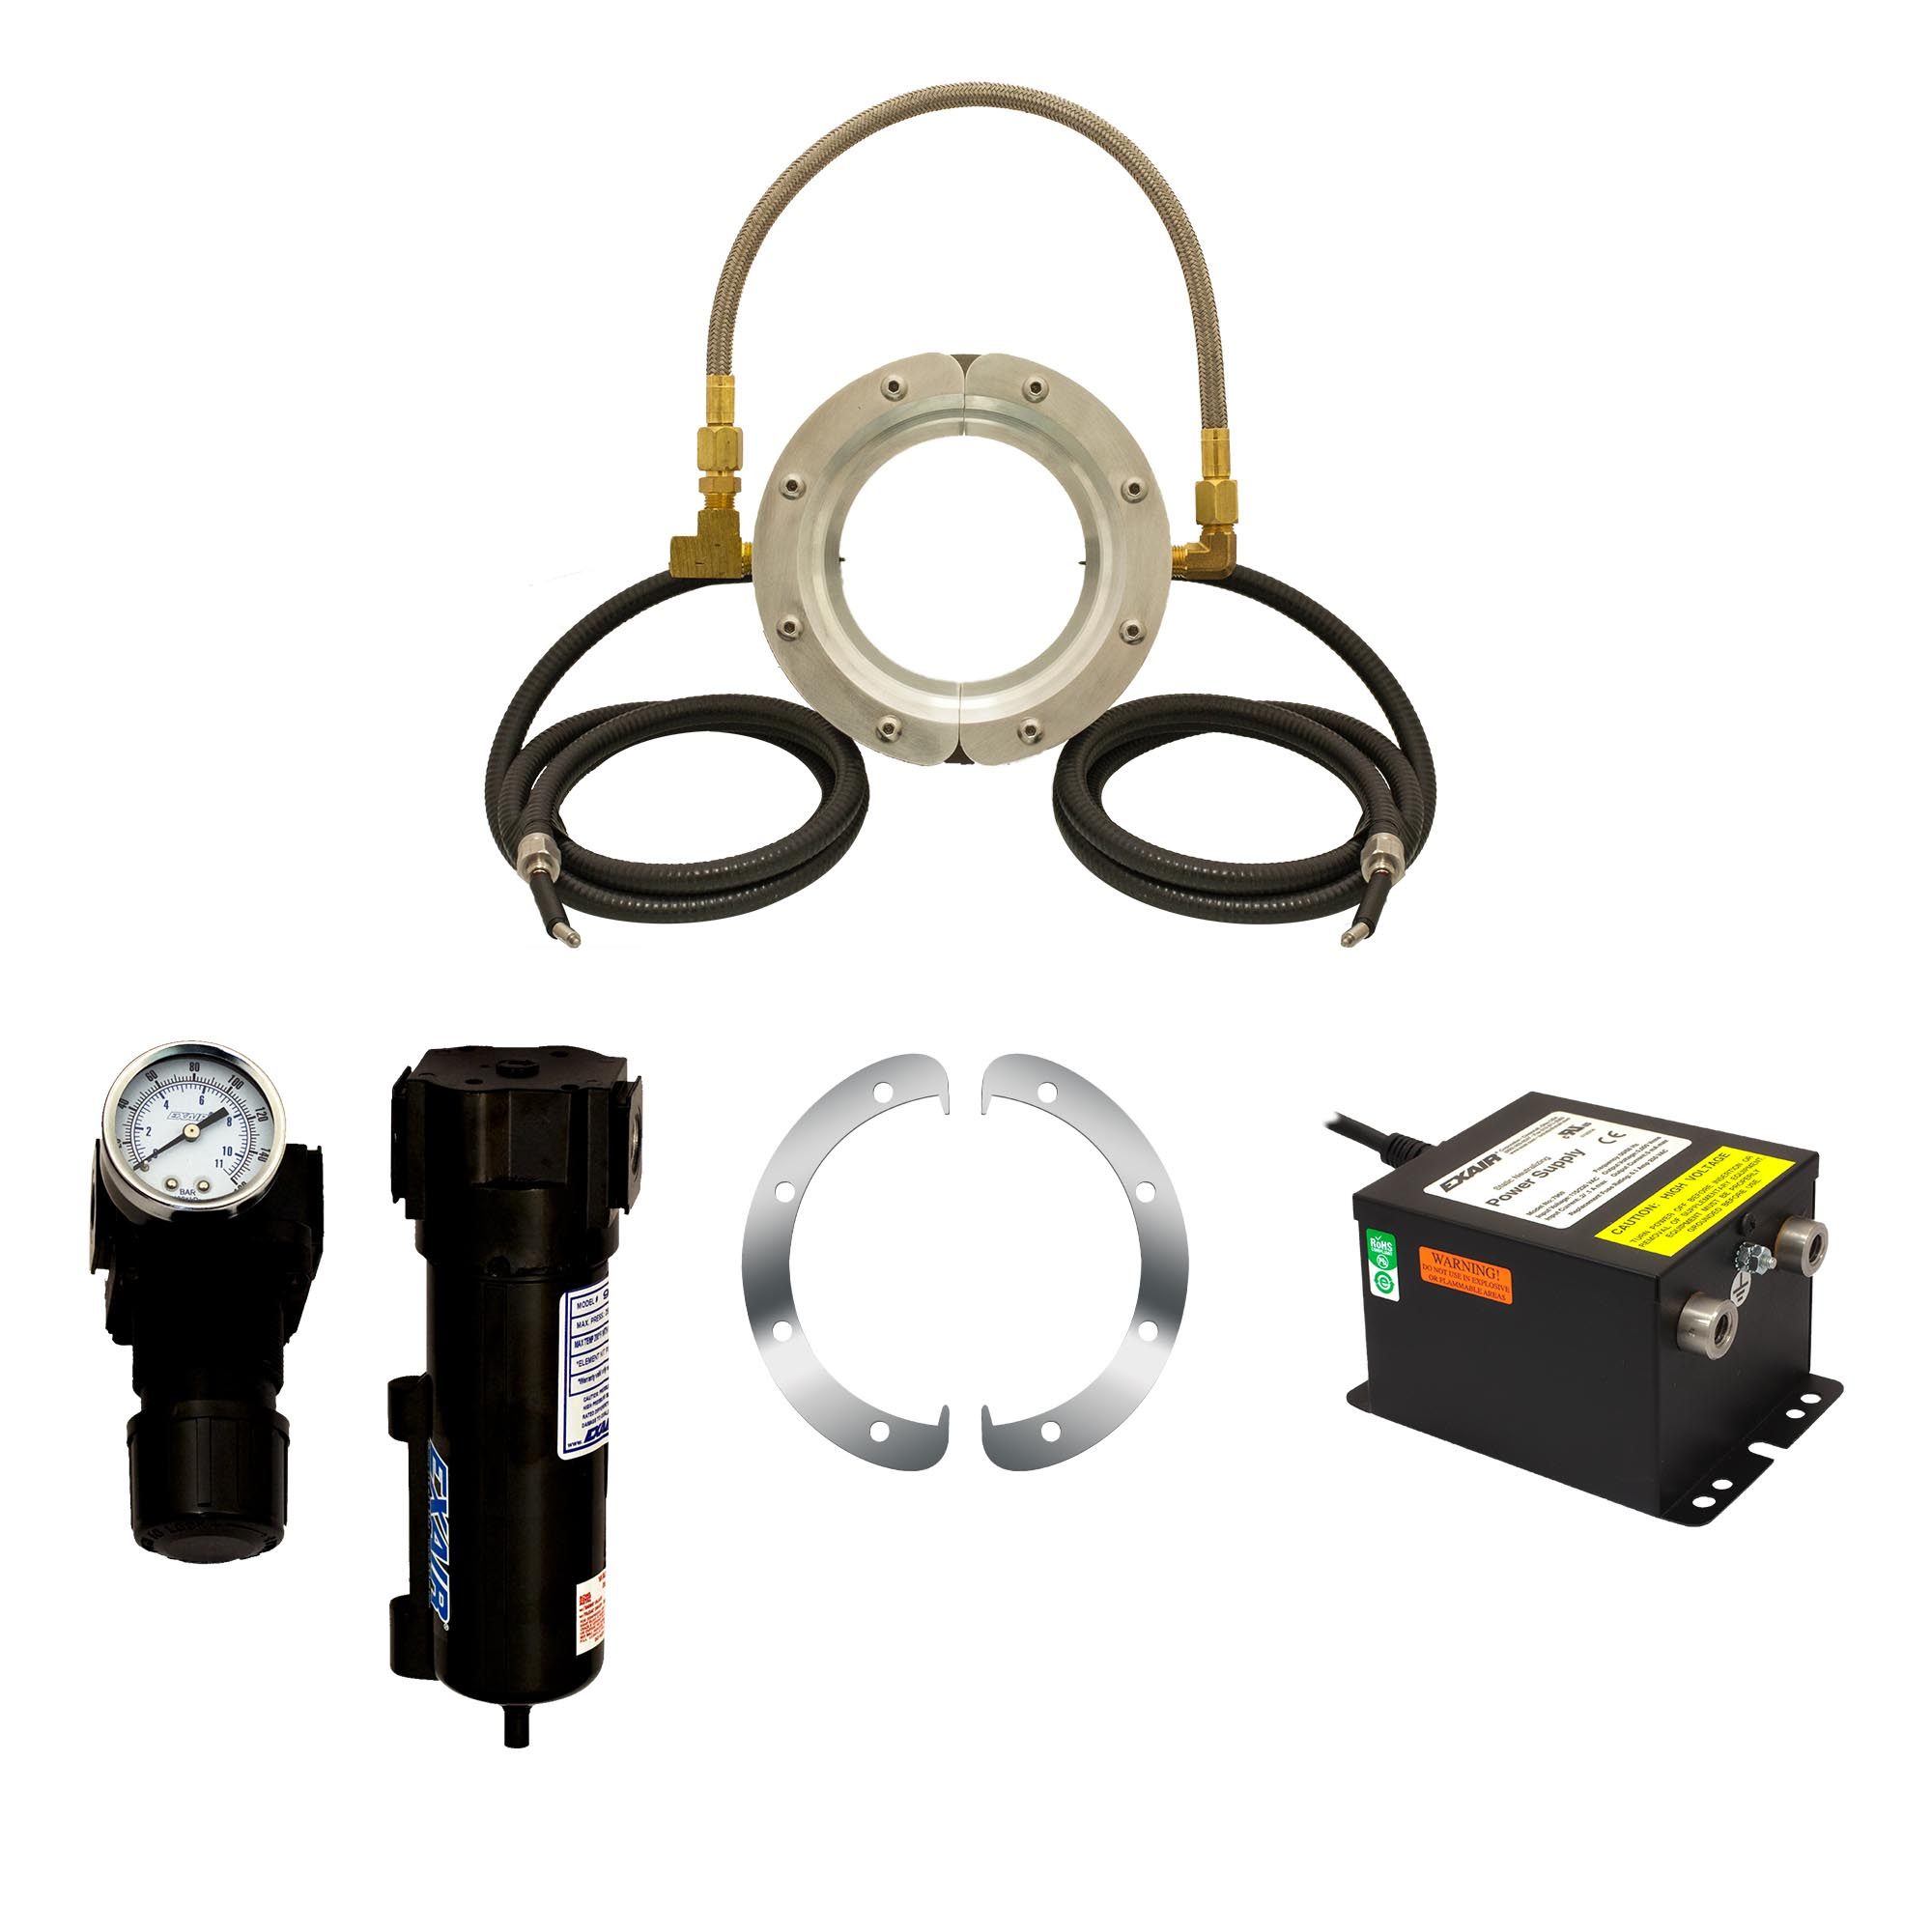 The Super Ion Air Wipe Kit includes the Super Ion Air Wipe, Power Supply, Filter/Separator, Pressure Regulator and shim set